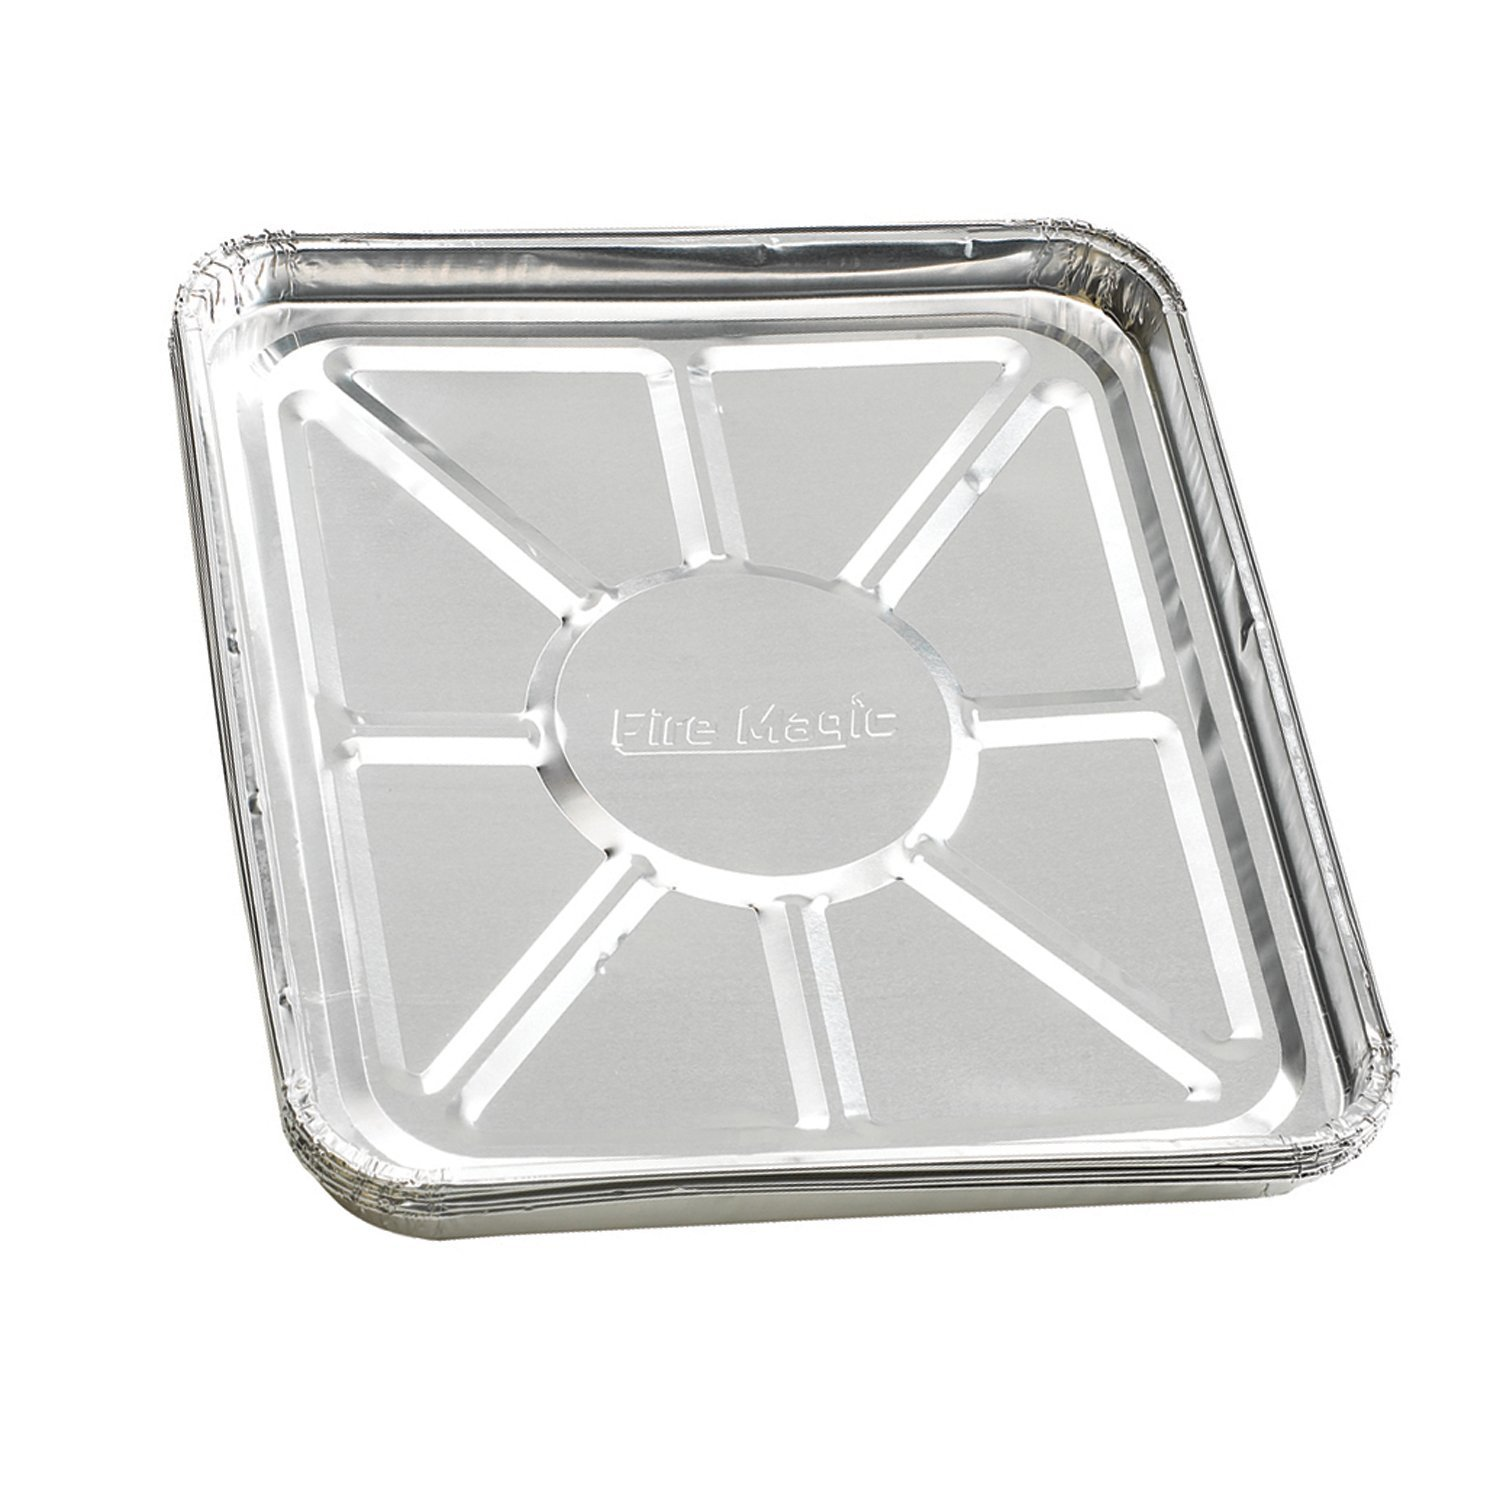 Fire Magic Disposable BBQ Grill Drip Tray Liner (4-Pack) by Fire Magic